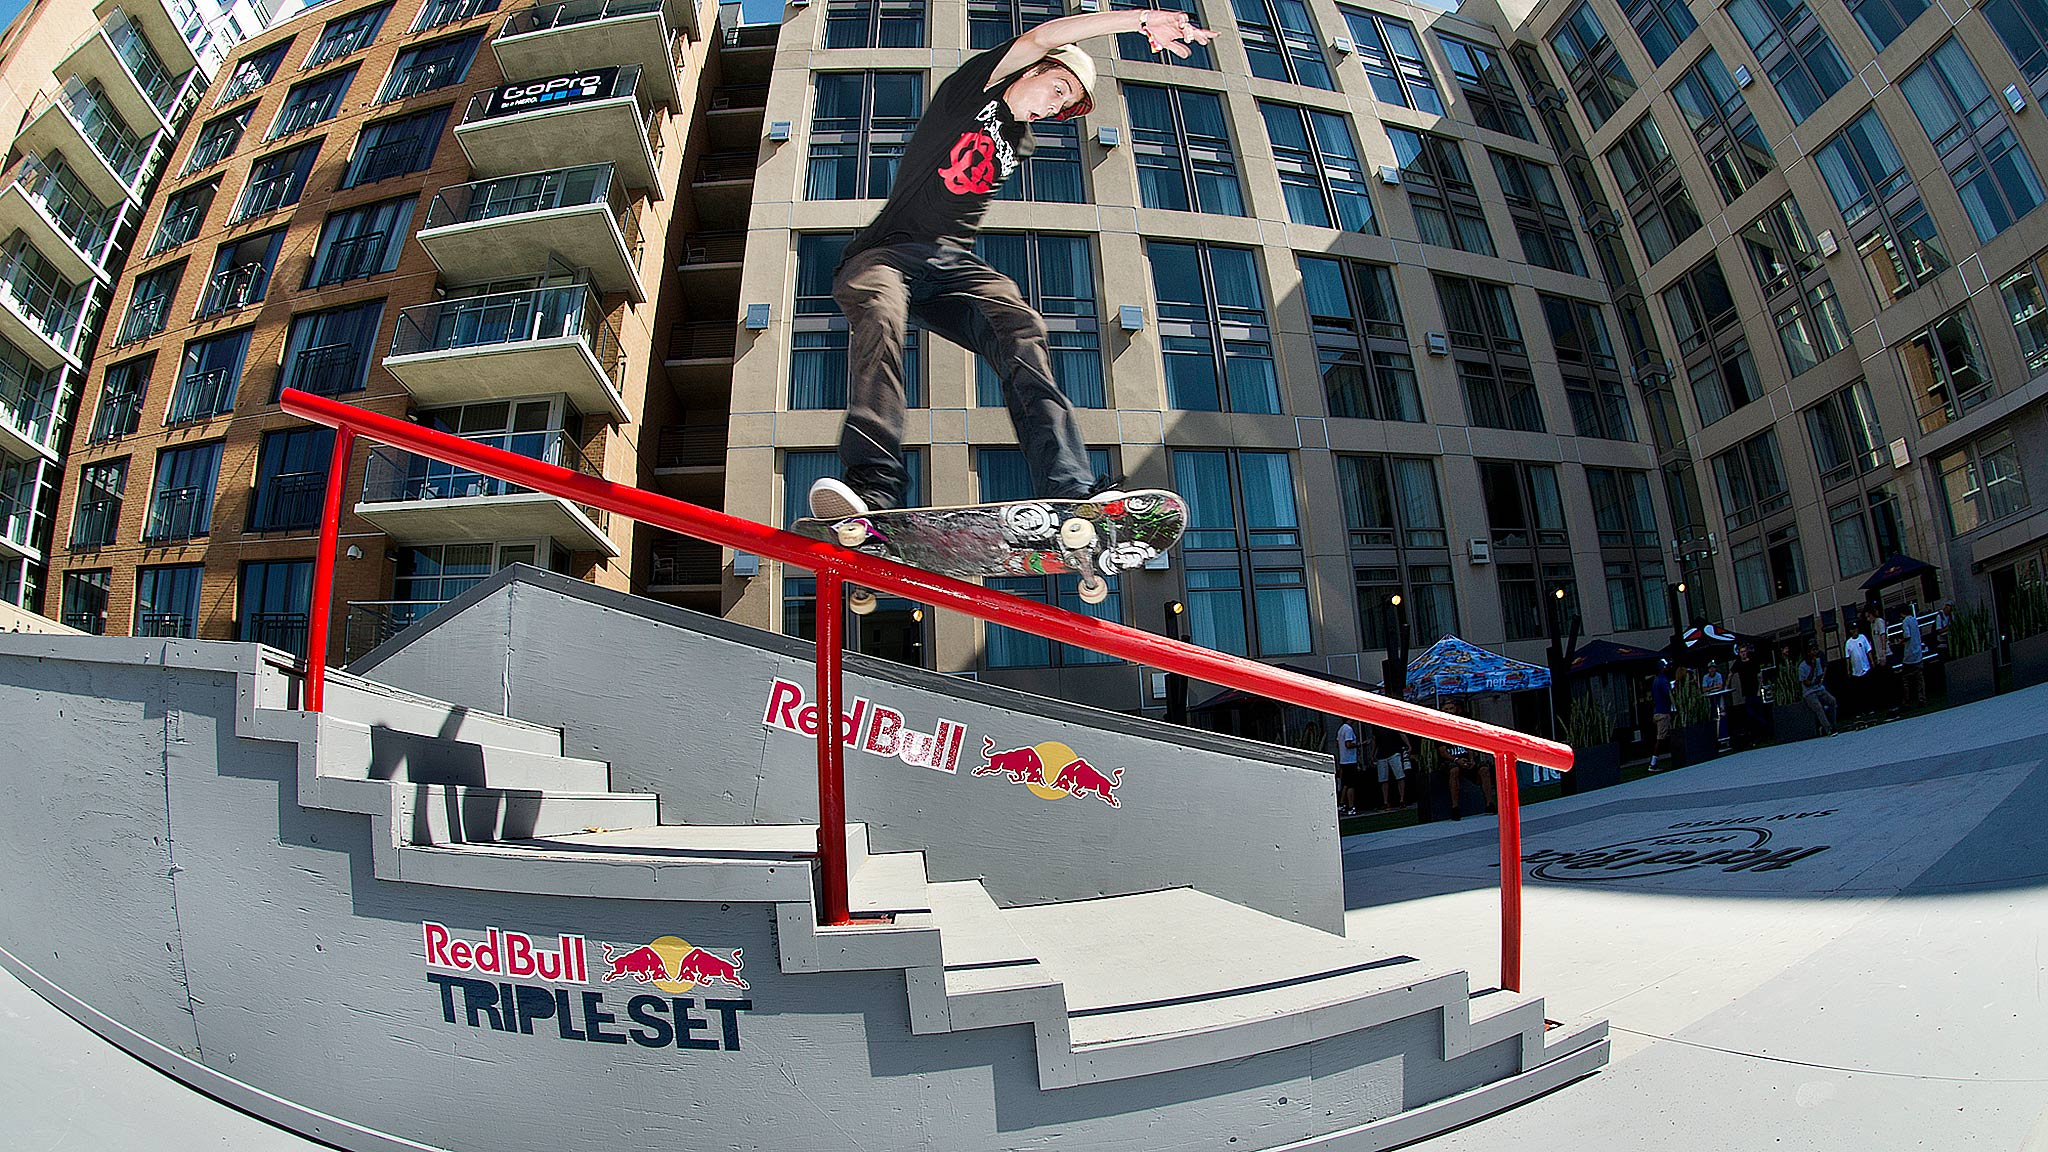 Red Bull Skateboarding Wallpaper Red Bull's Triple Set Skate